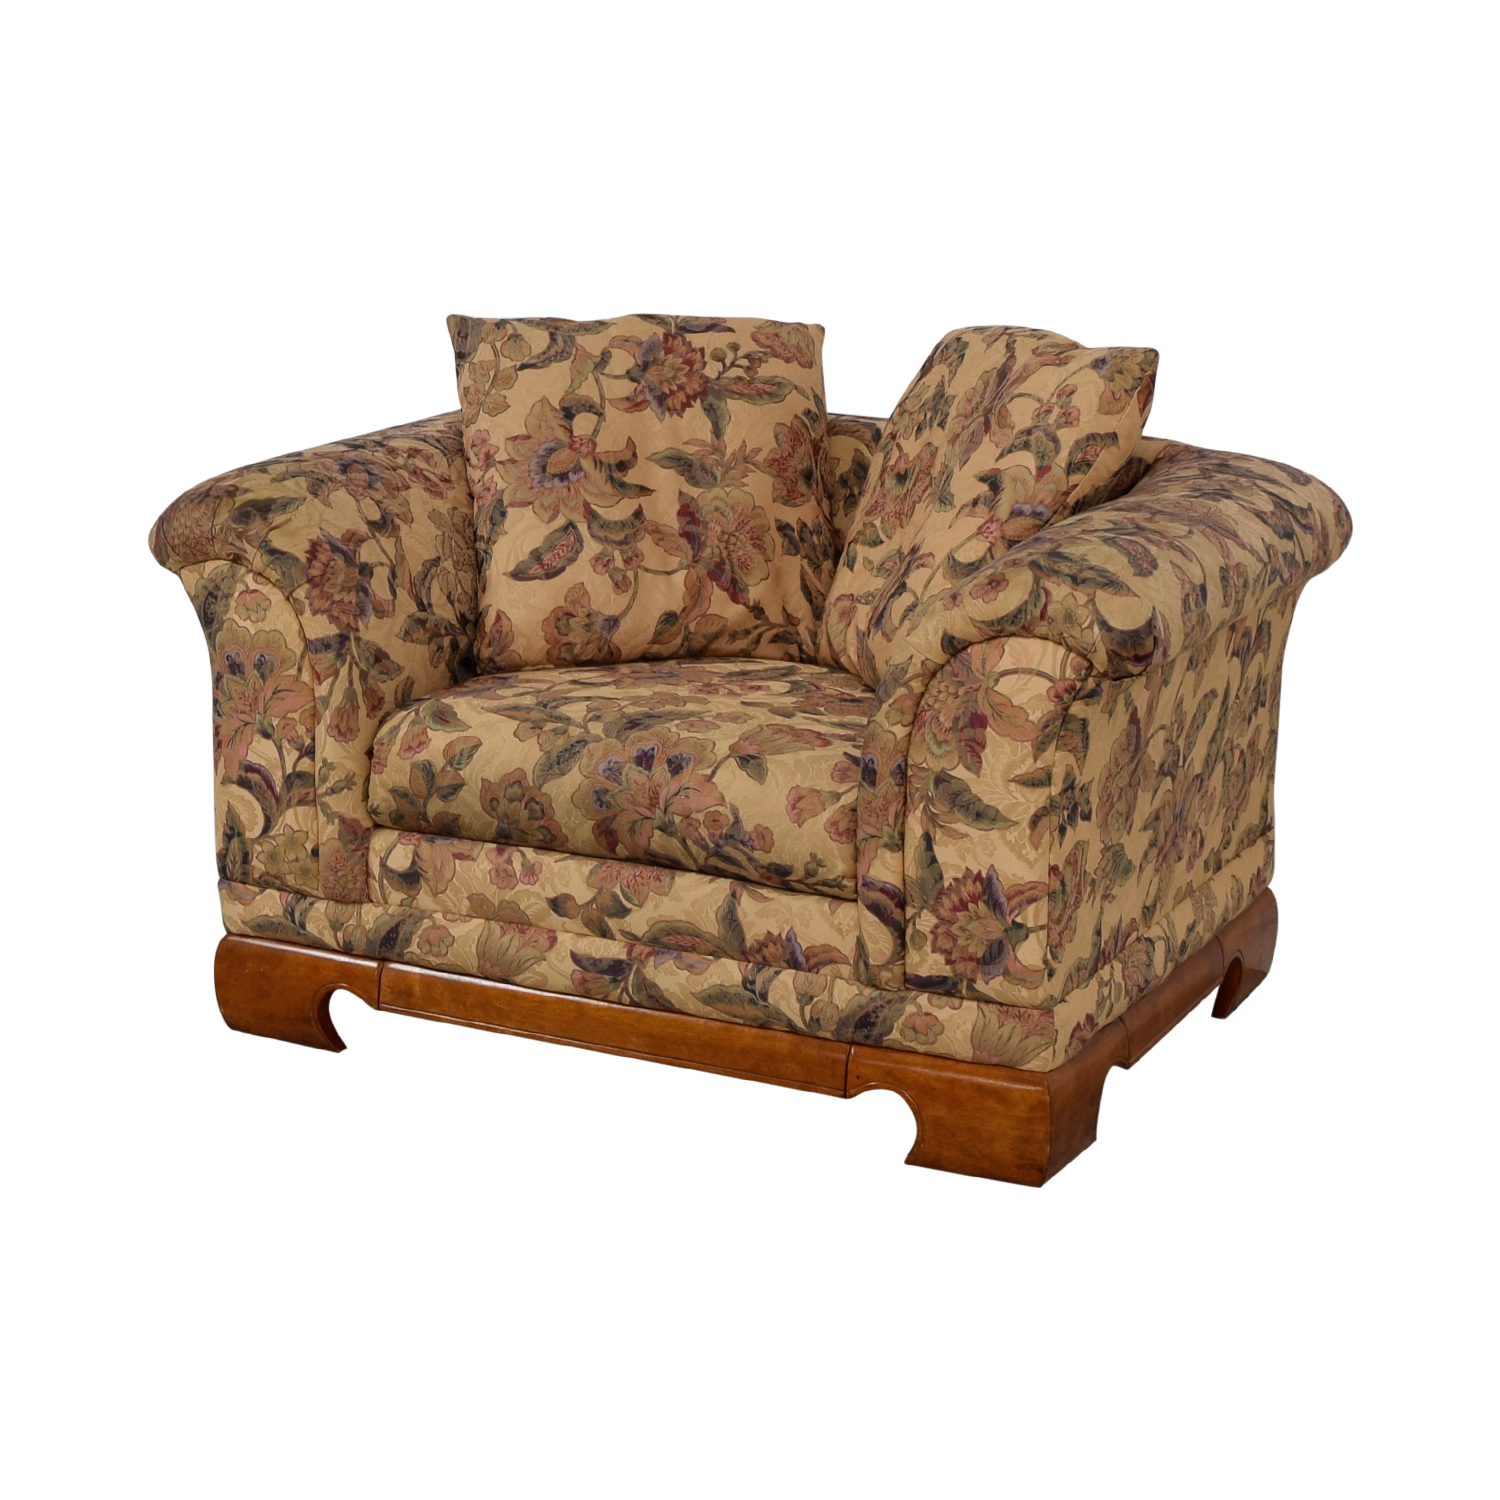 floral print accent chairs sand target 90 off sealy furniture